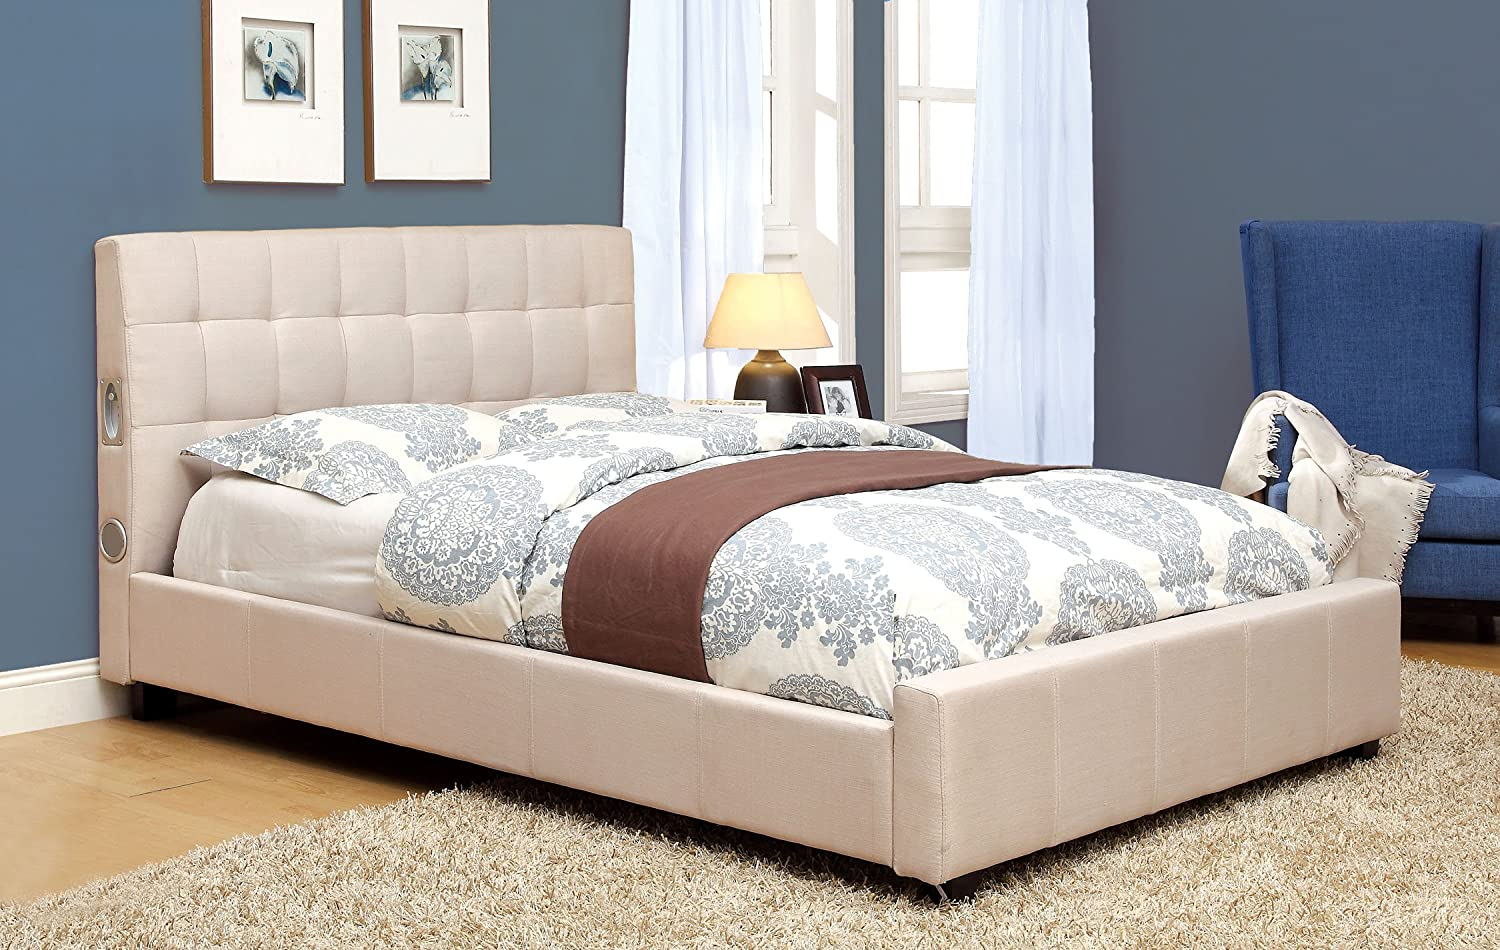 Amazon.com: Furniture Of America Reyes Fabric Platform Bed With Bluetooth  Speaker Headboard Design, Queen, Ivory: Kitchen U0026 Dining